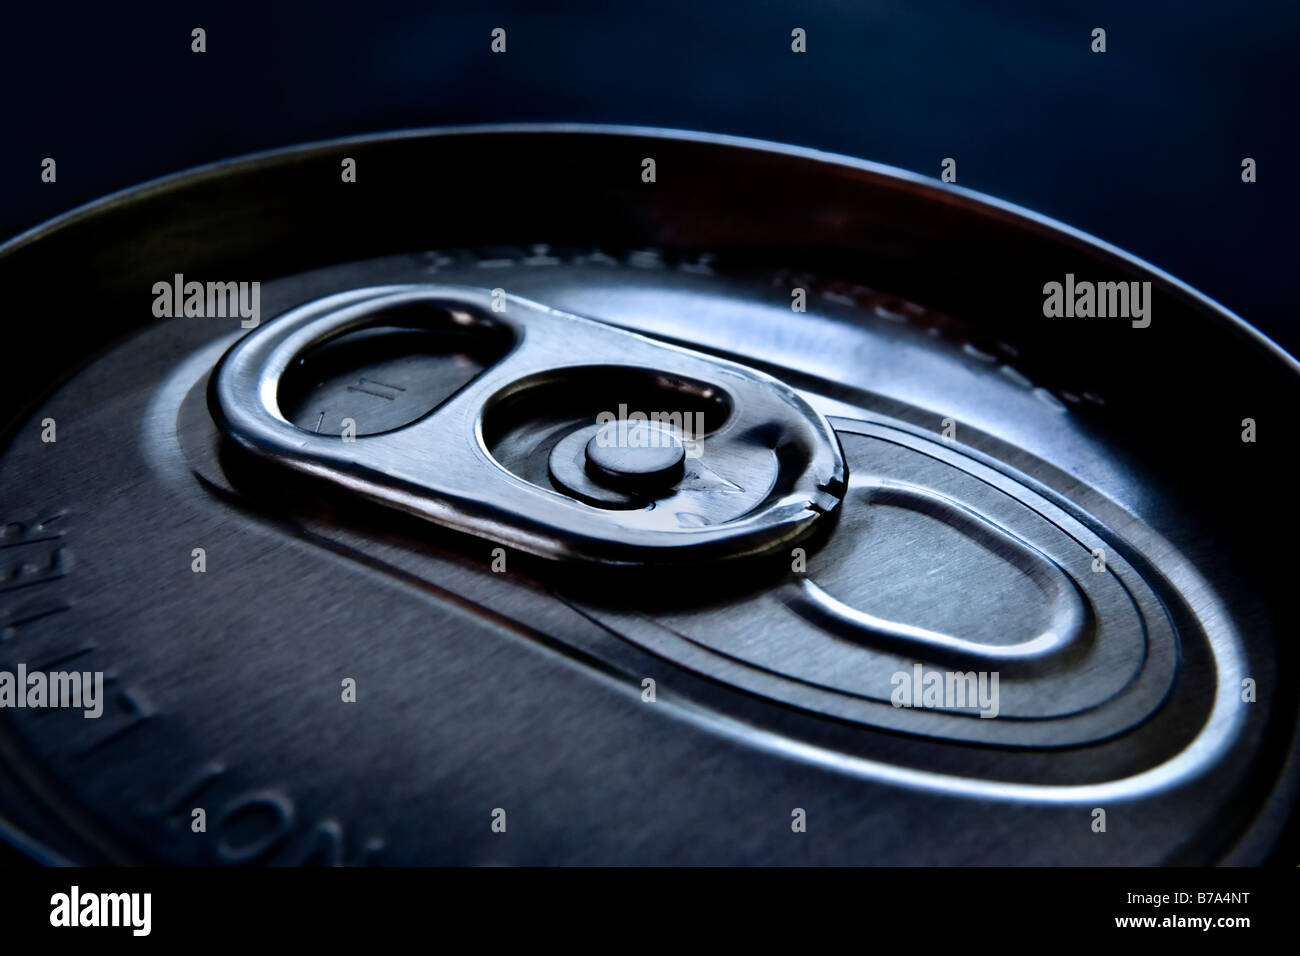 Ring pull on top of a drink can - Stock Image